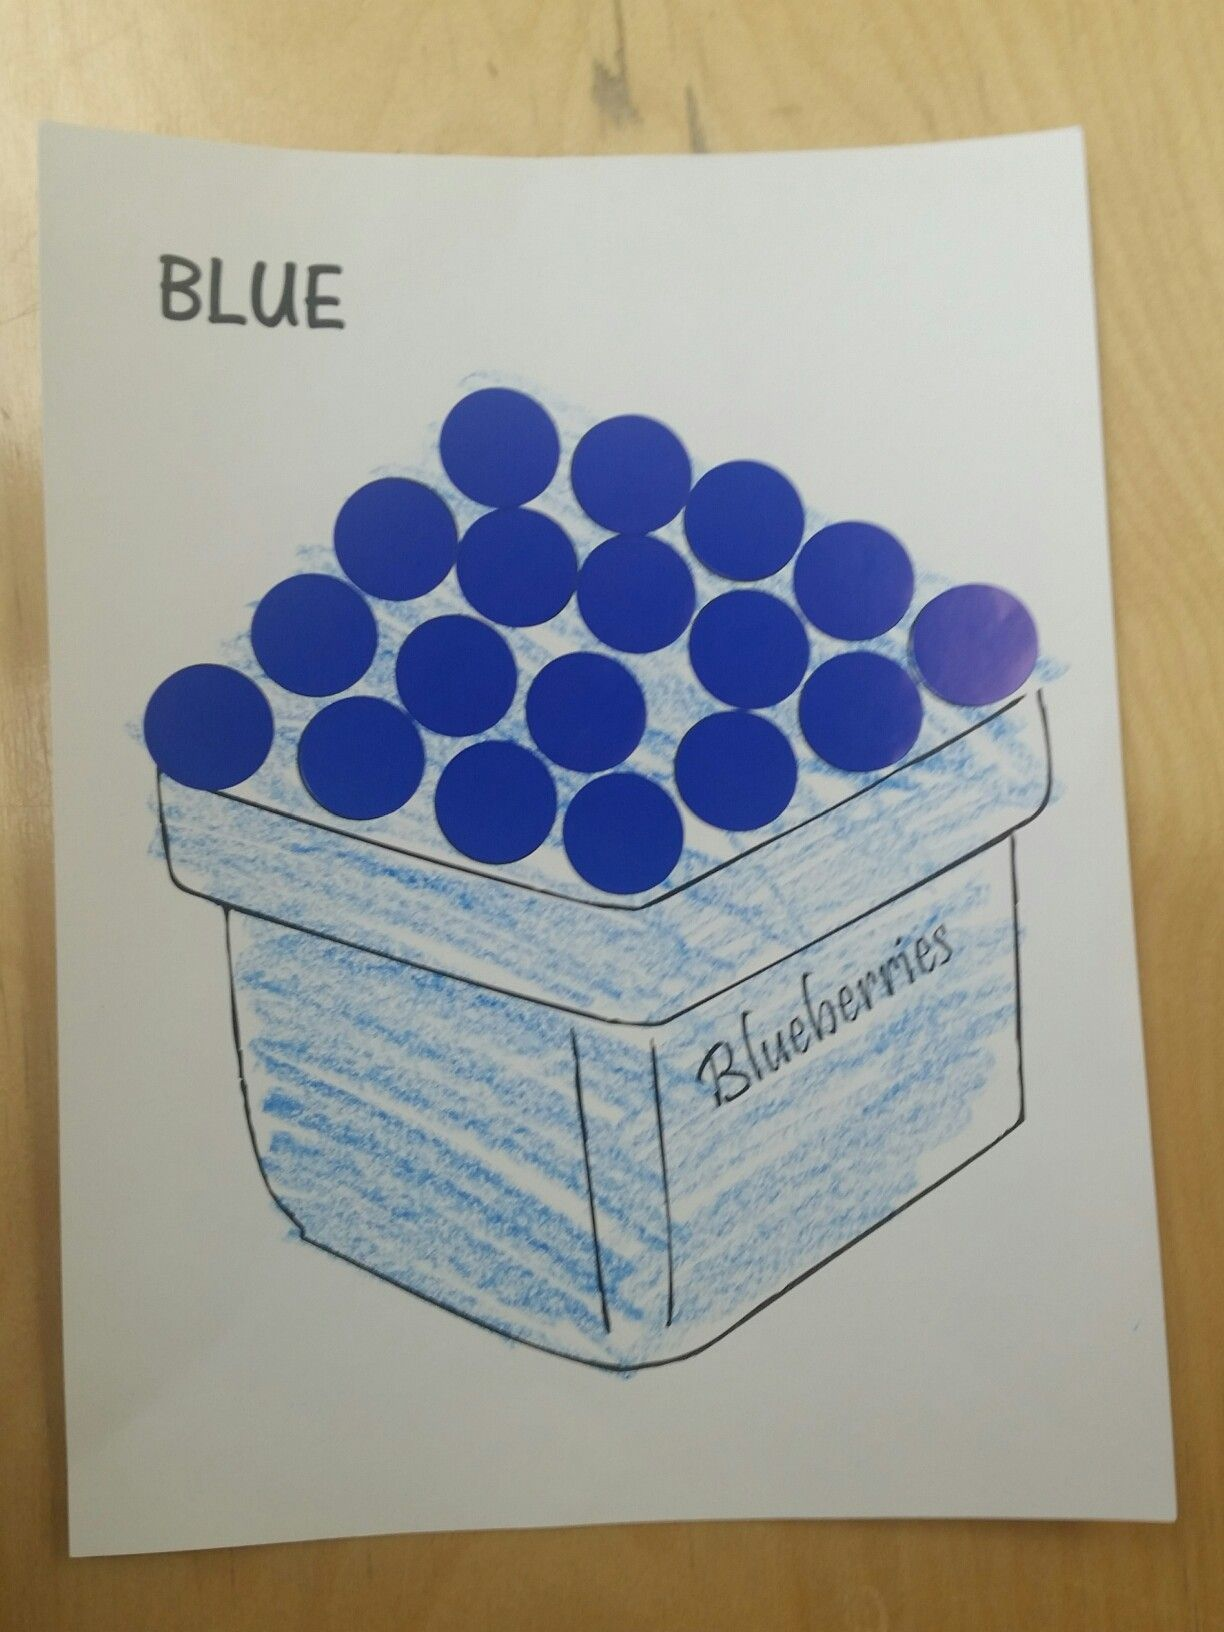 Color Blue Blueberries Sticker Craft For Nursery